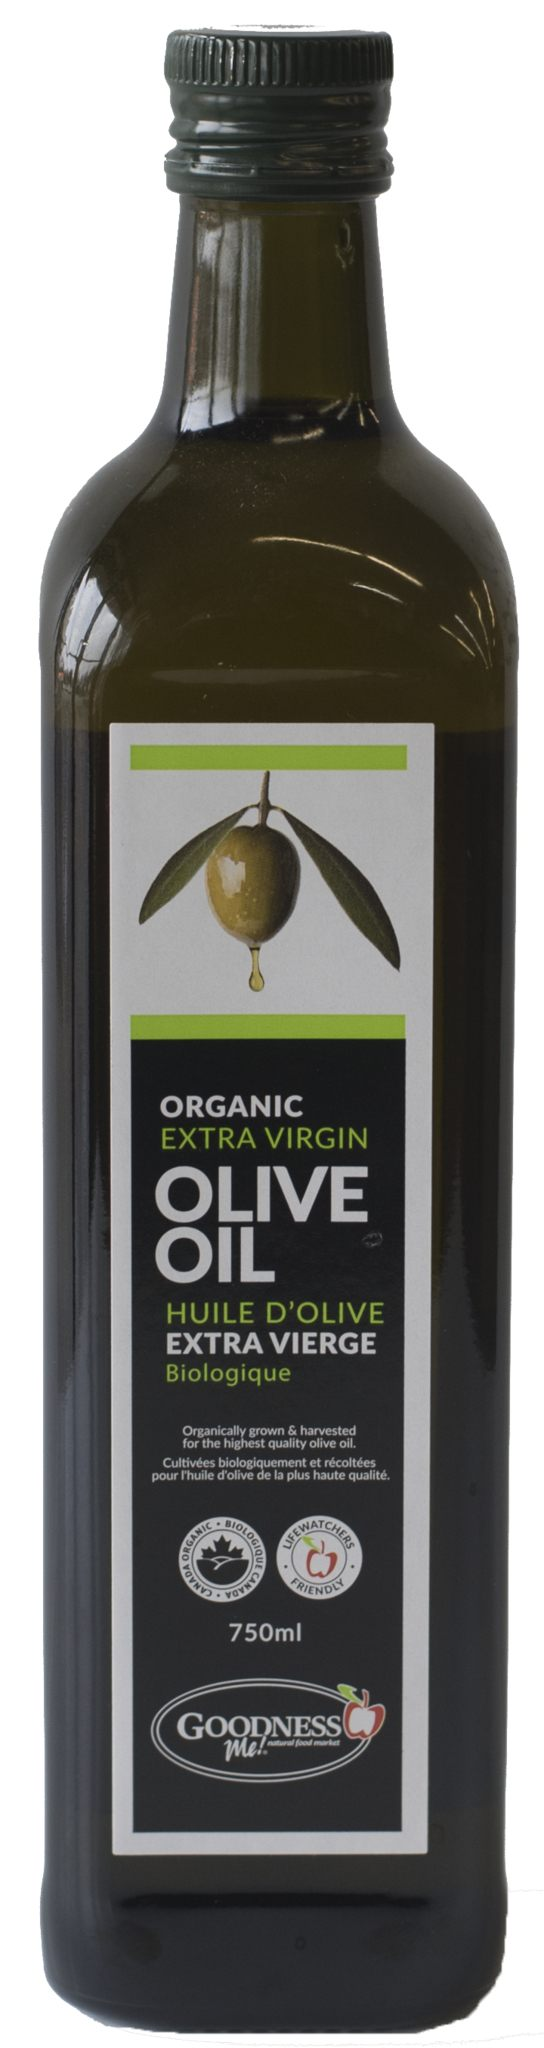 Food & Drink - Goodness Me - Organic Olive Oil, 750ml